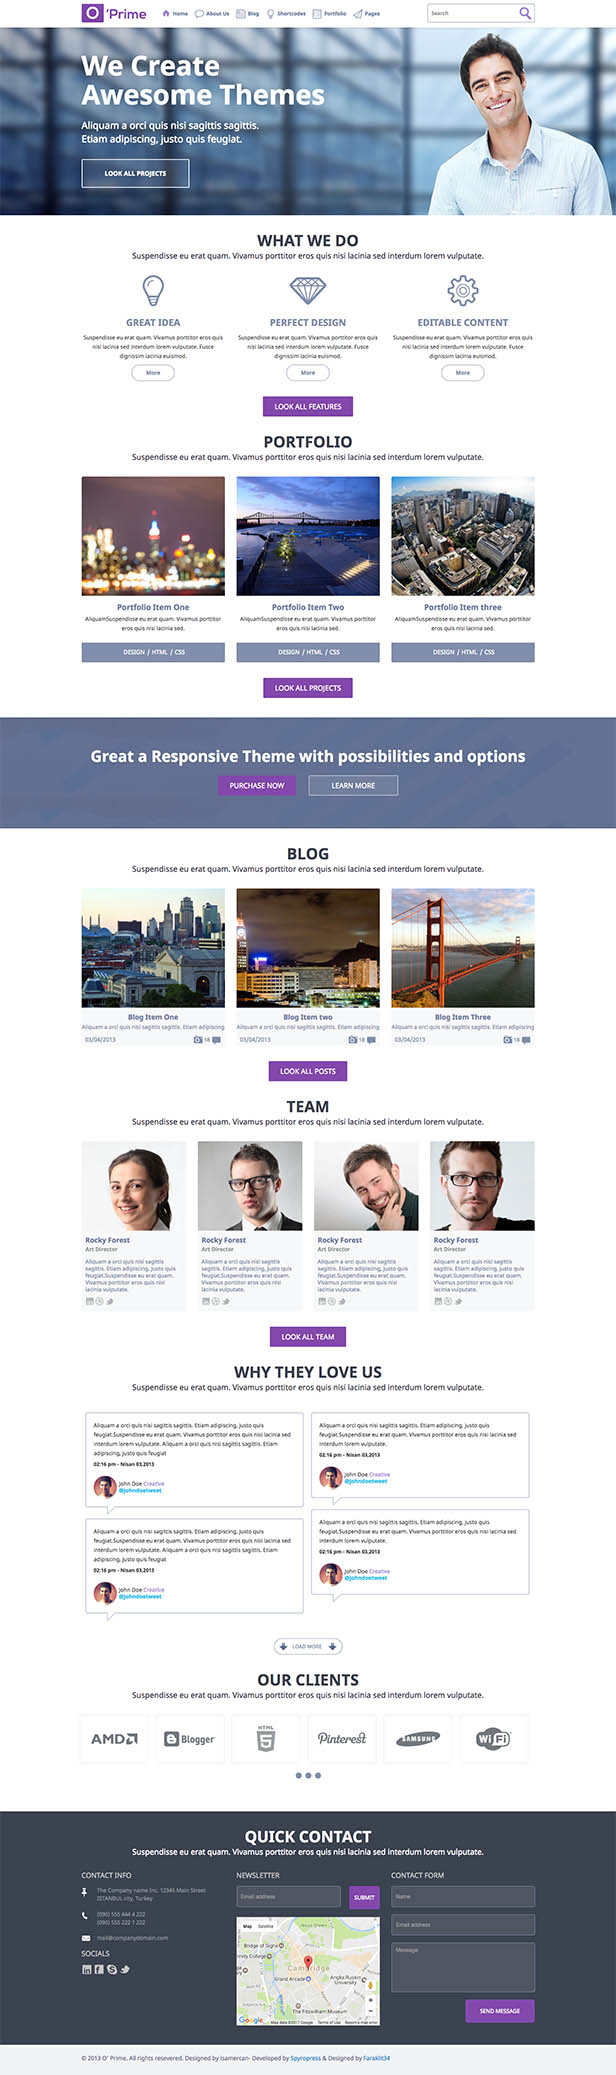 O'prime Multi Purpose Responsive HTML Template - 9